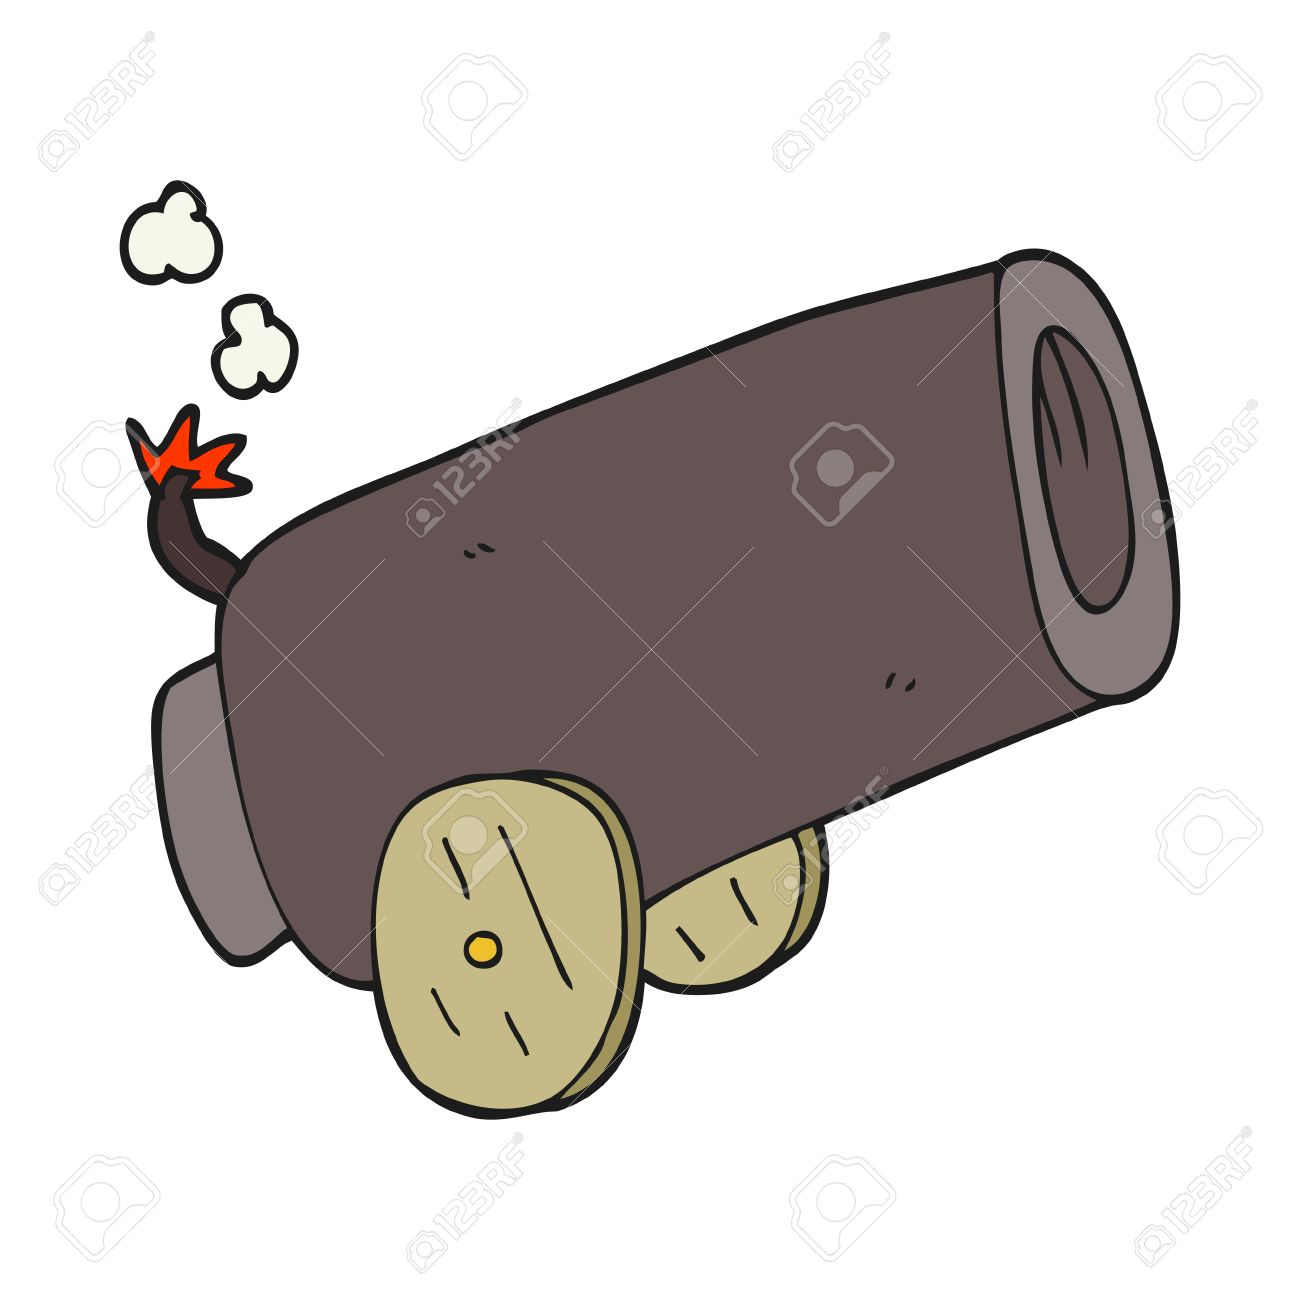 freehand drawn cartoon cannon royalty free cliparts, vectors, and